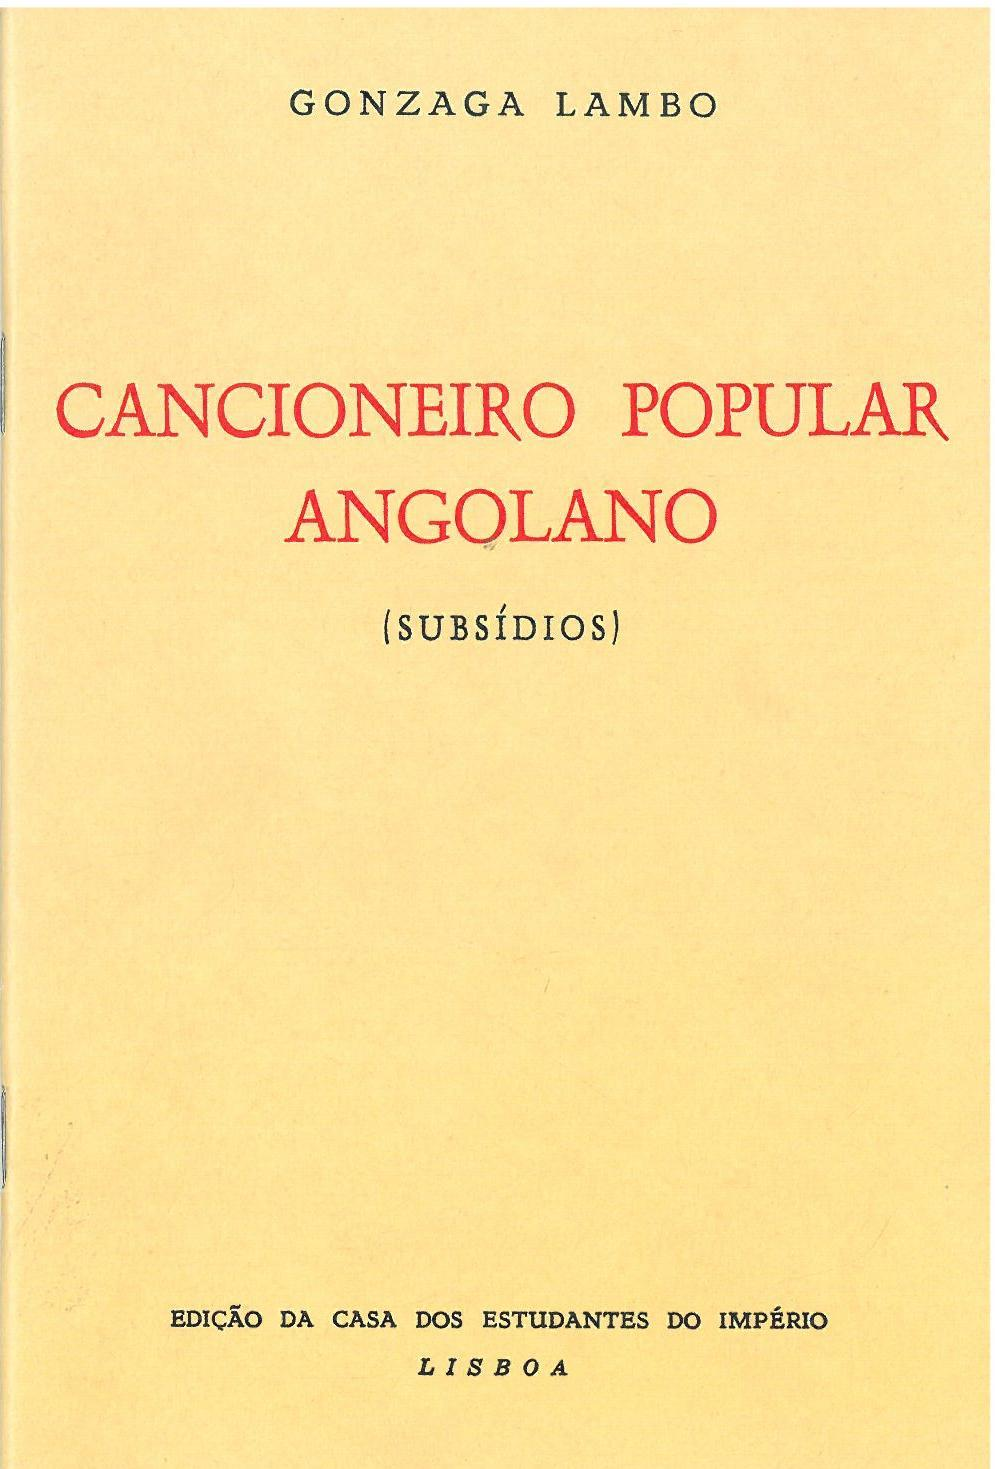 Cancioneiro popular angolano_.jpg